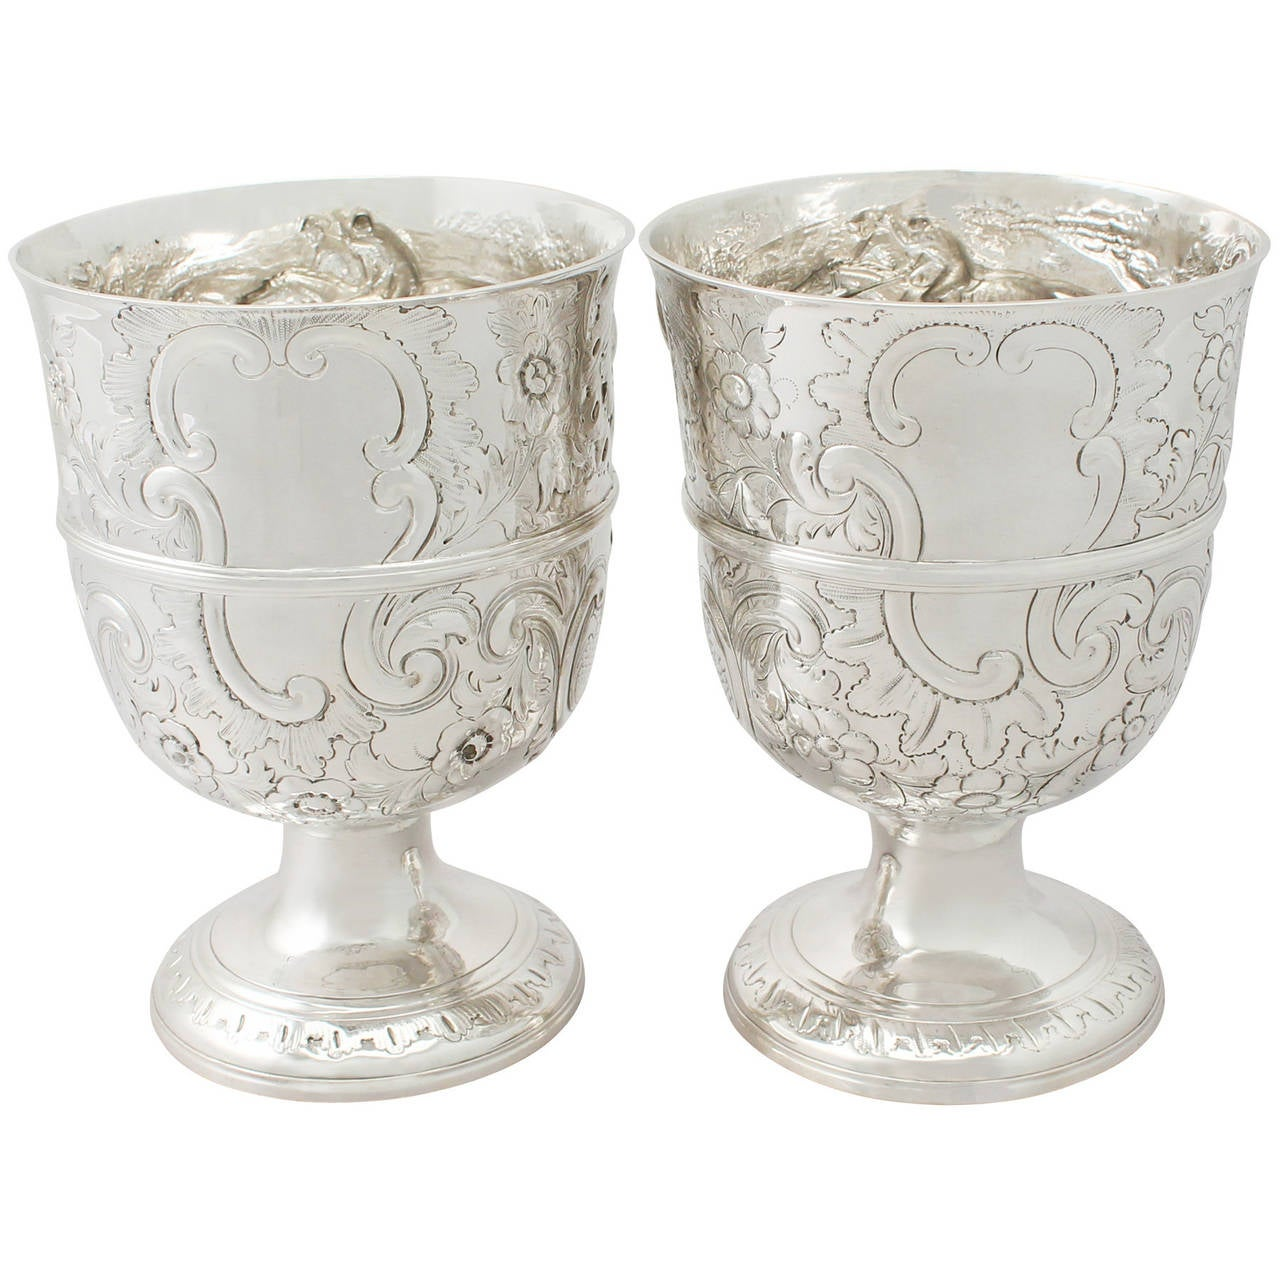 Pair of Composite Sterling Silver Presentation Cups - Antique